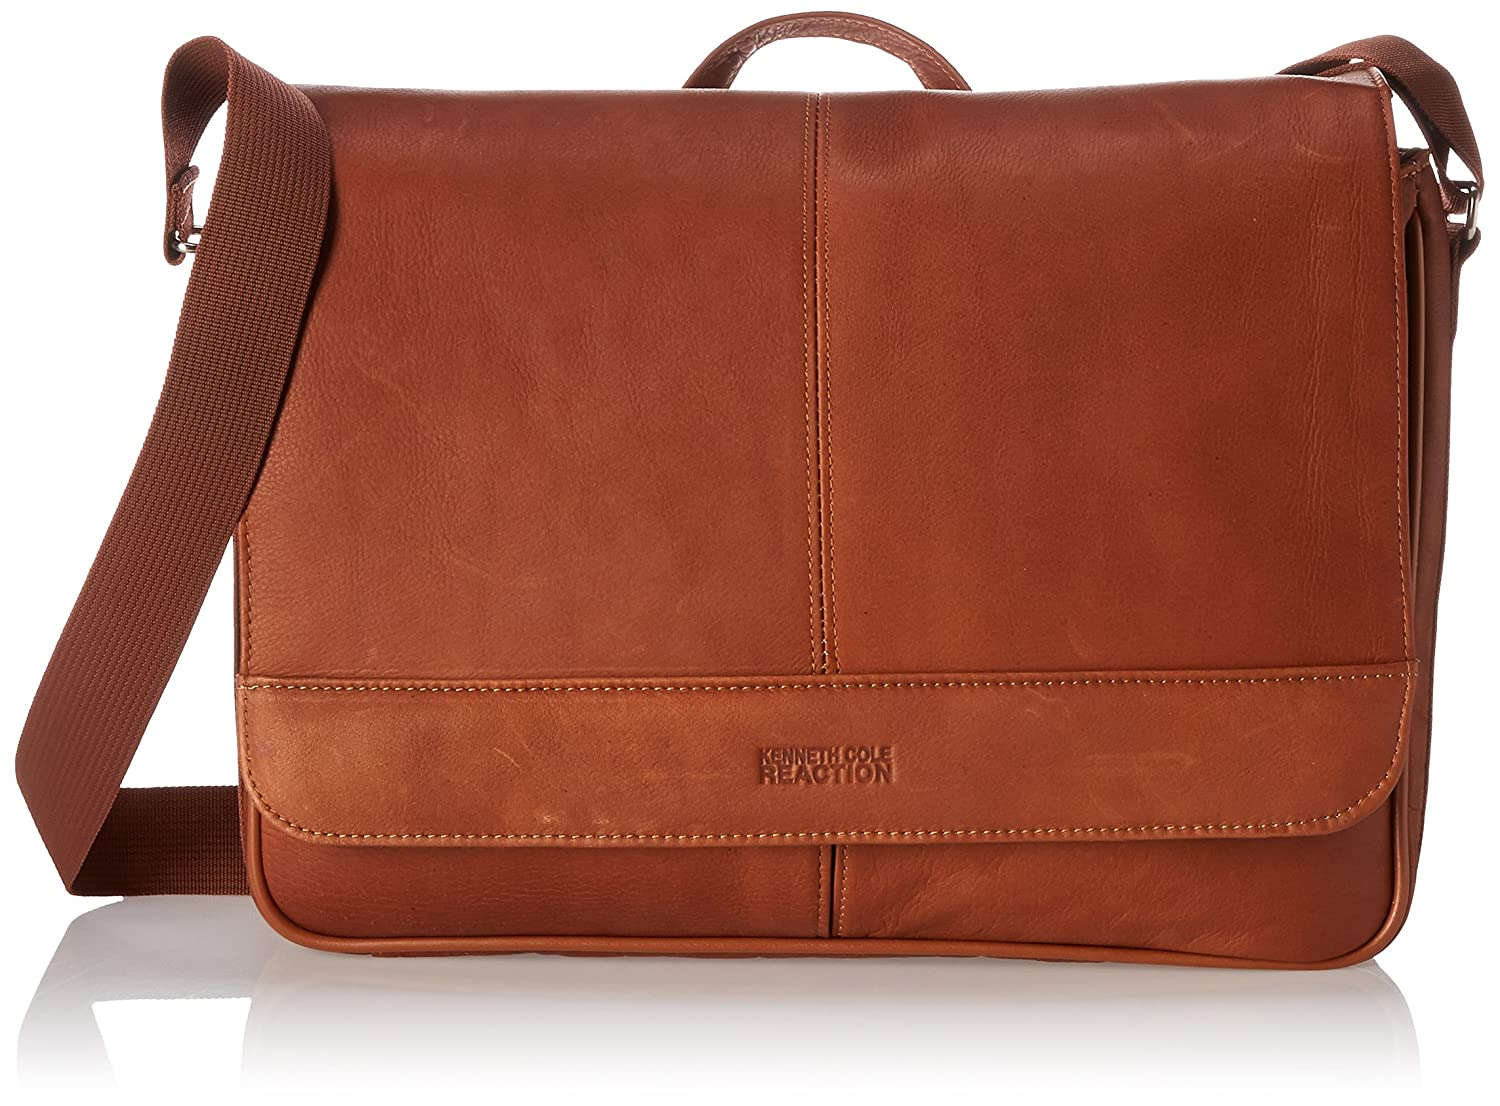 Kenneth Cole Reaction Risky Business, Cognac, One Size Heritage-Kenneth Cole Luggage 524544